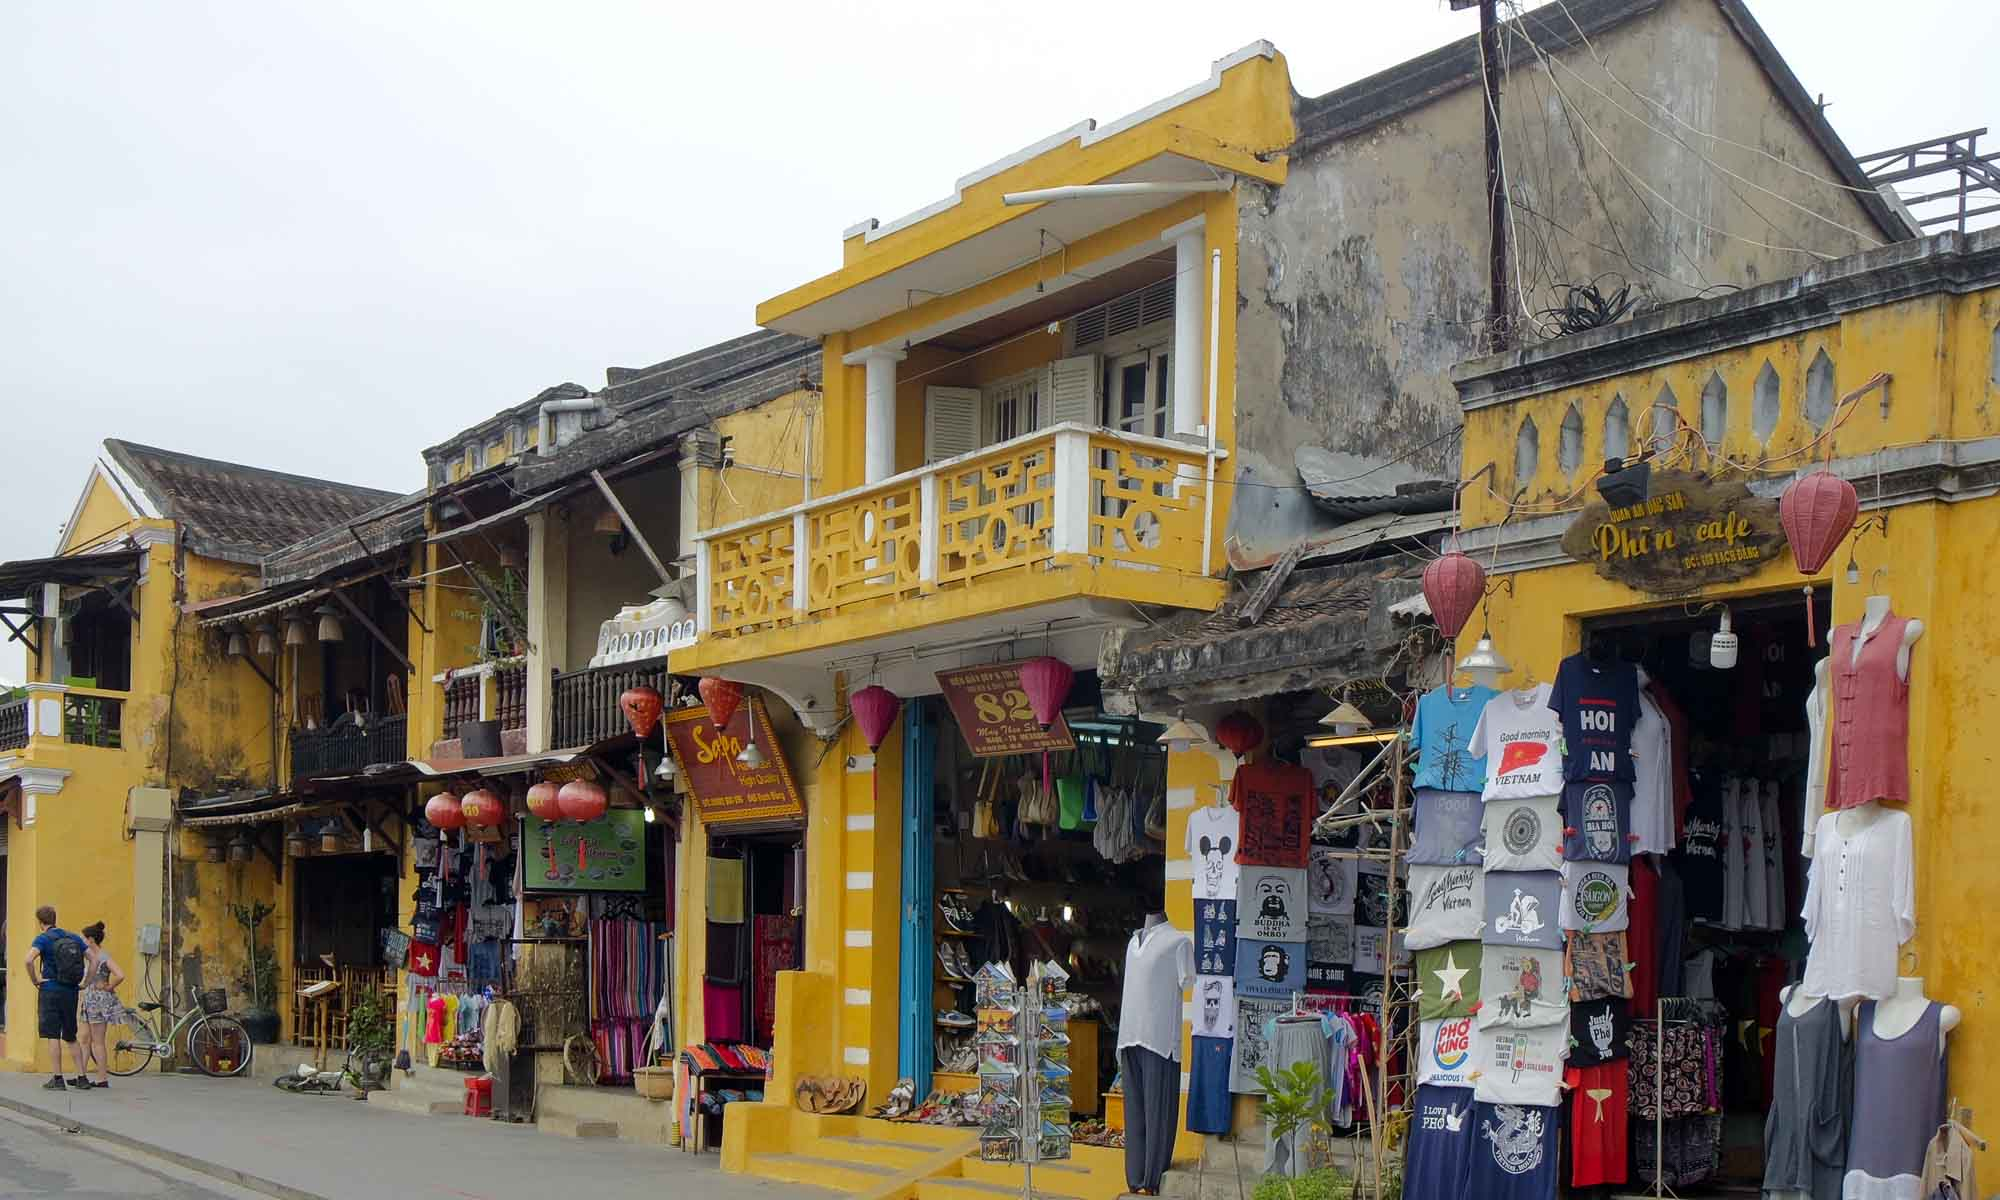 Yellow painted buildings in Old Town